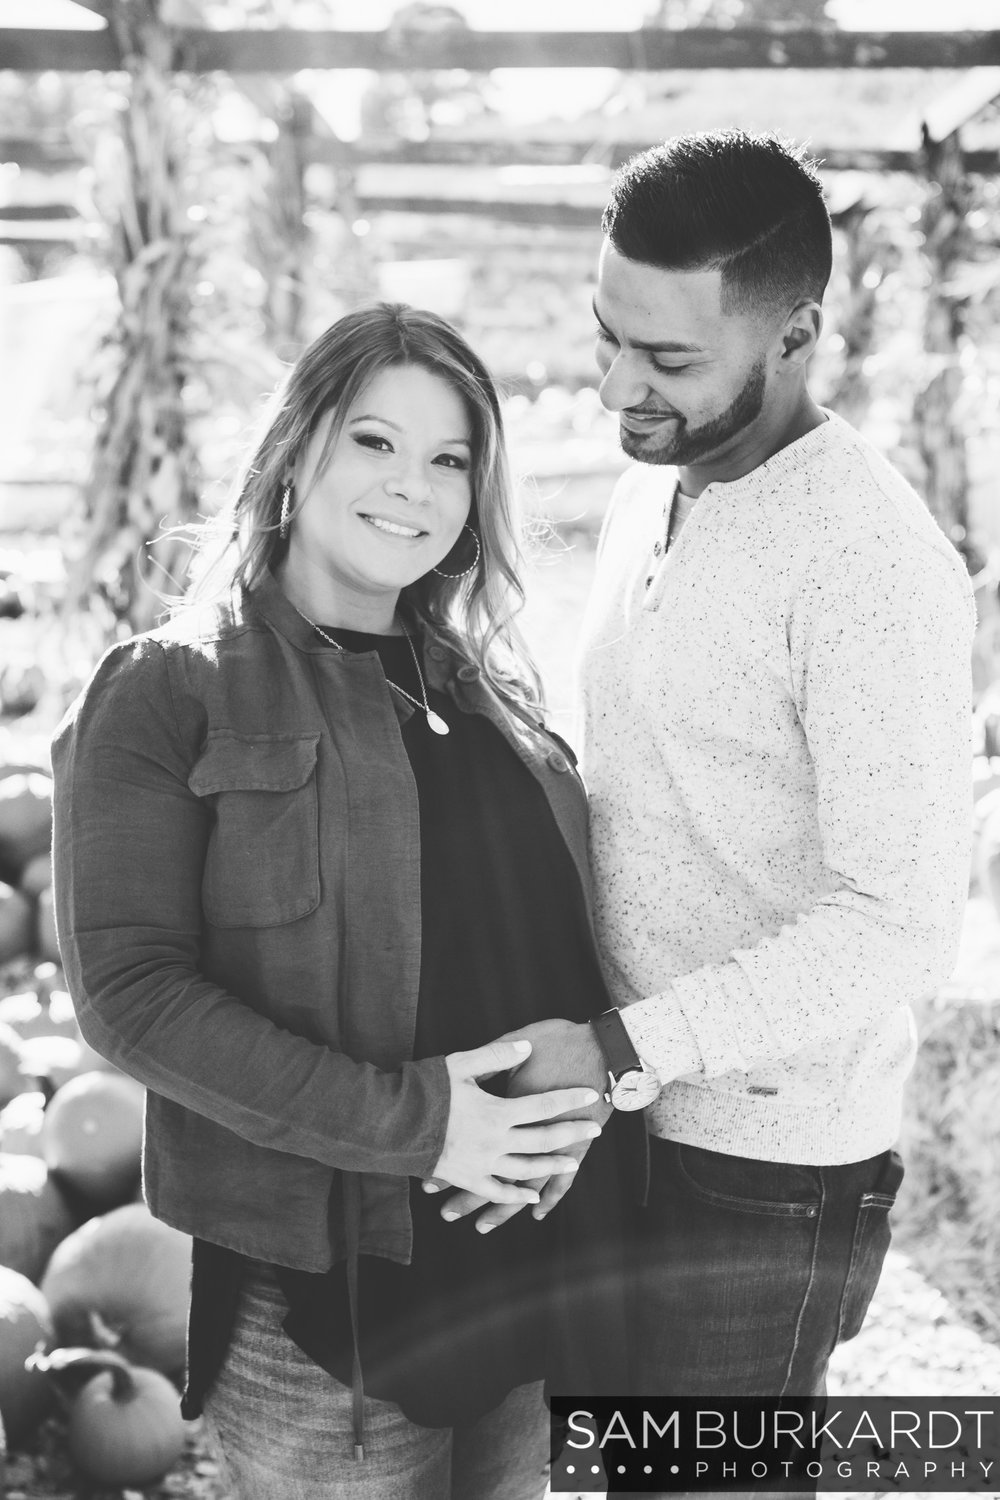 sburkardt_maternity_connecticut_fall_orchard_photography_005.jpg